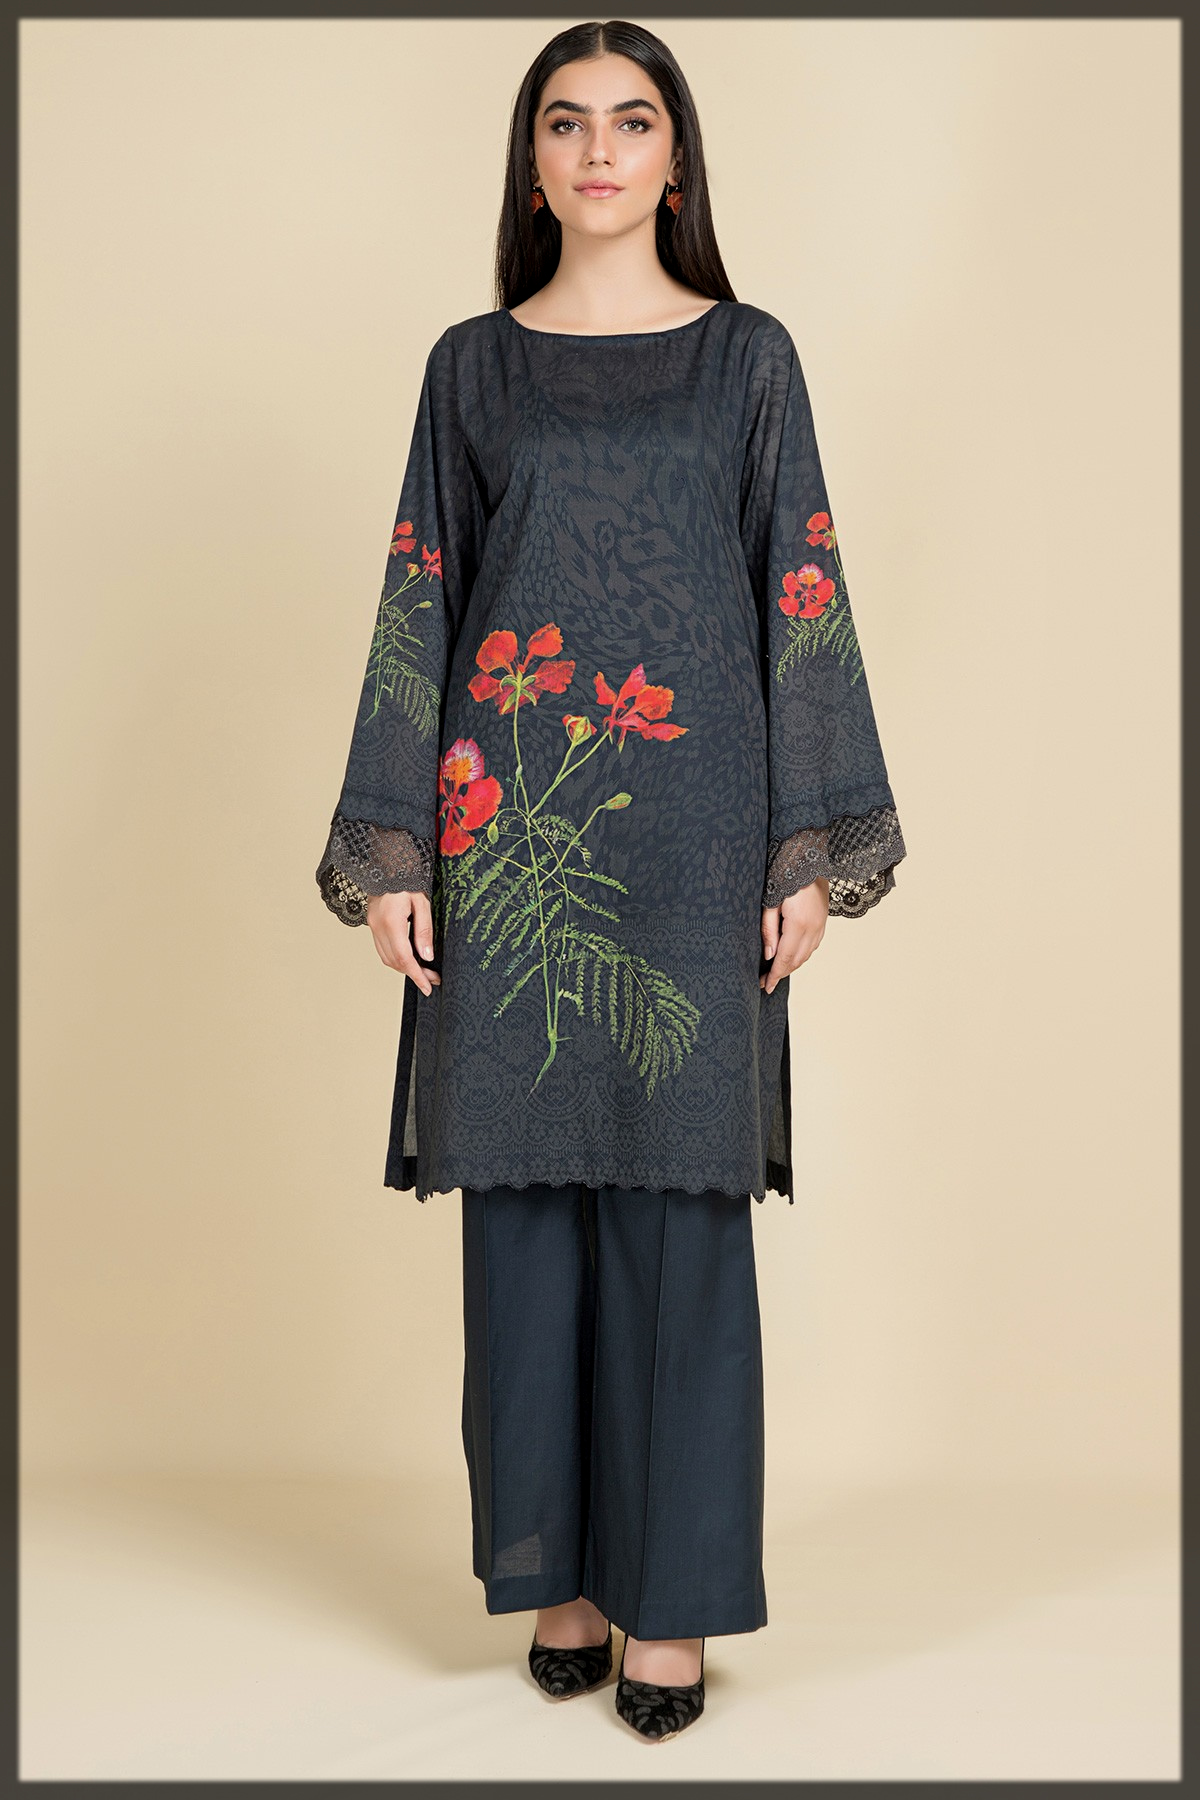 Digital Printed Shirt With Dyed Lace